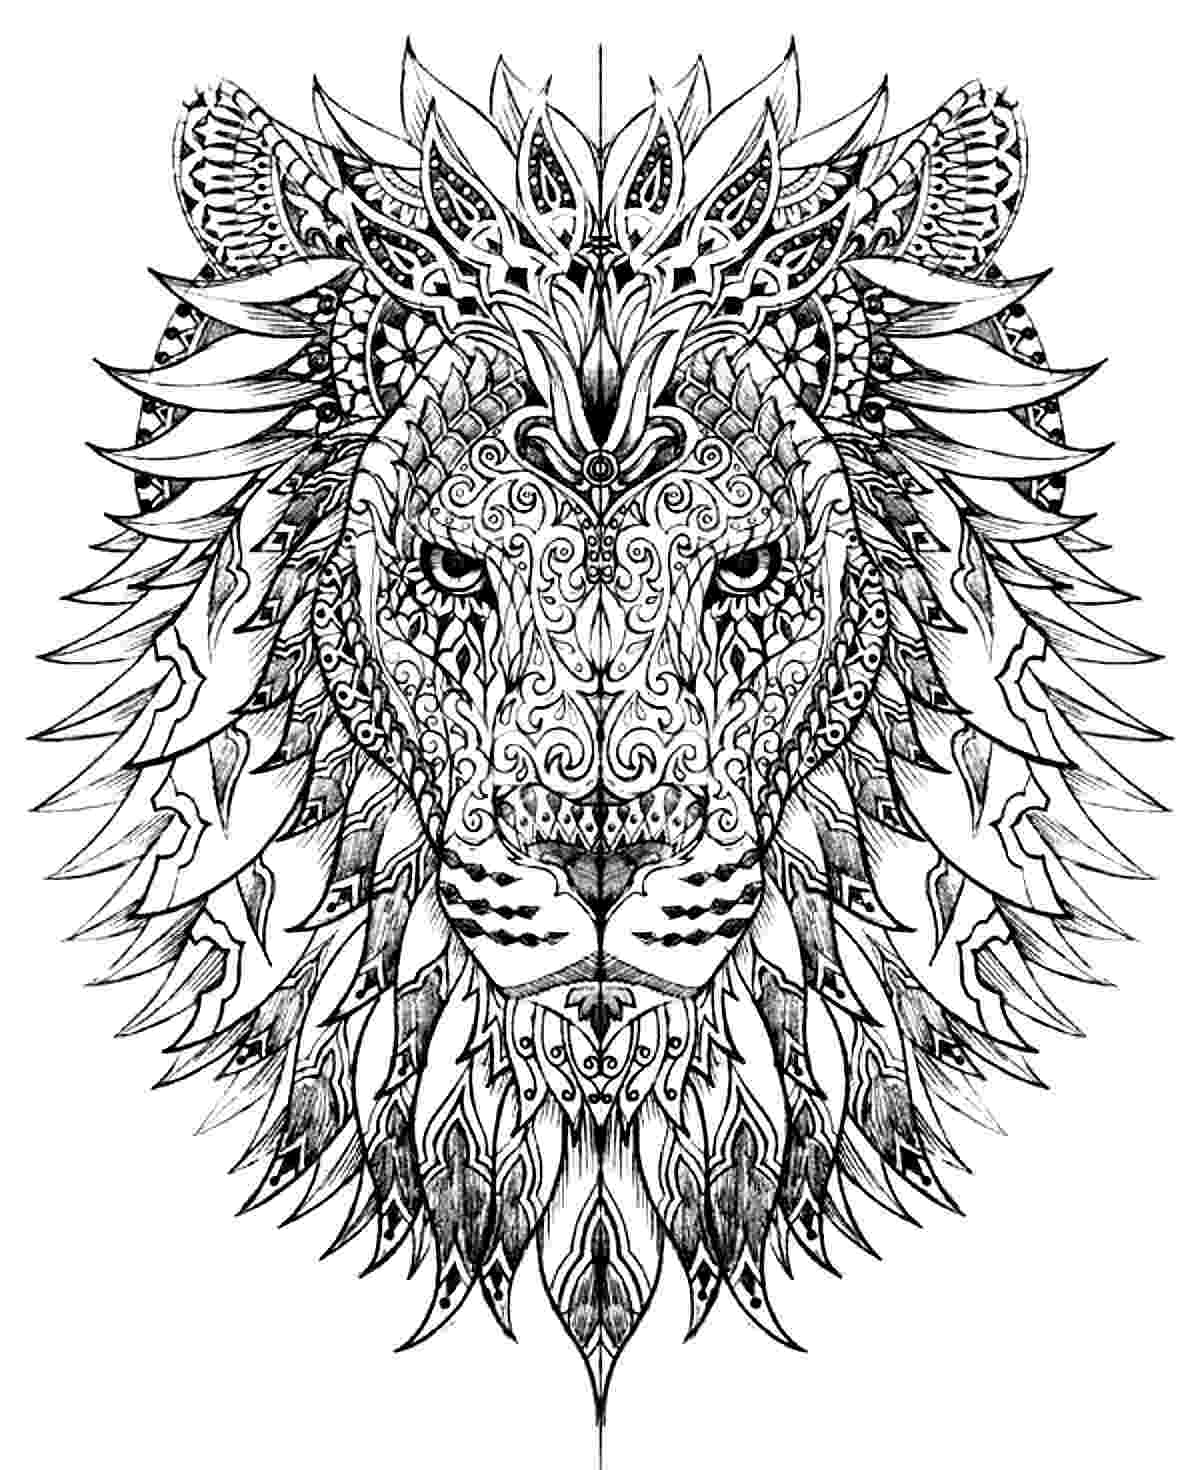 hard coloring pages for adults free printable abstract coloring pages for adults for hard coloring pages adults